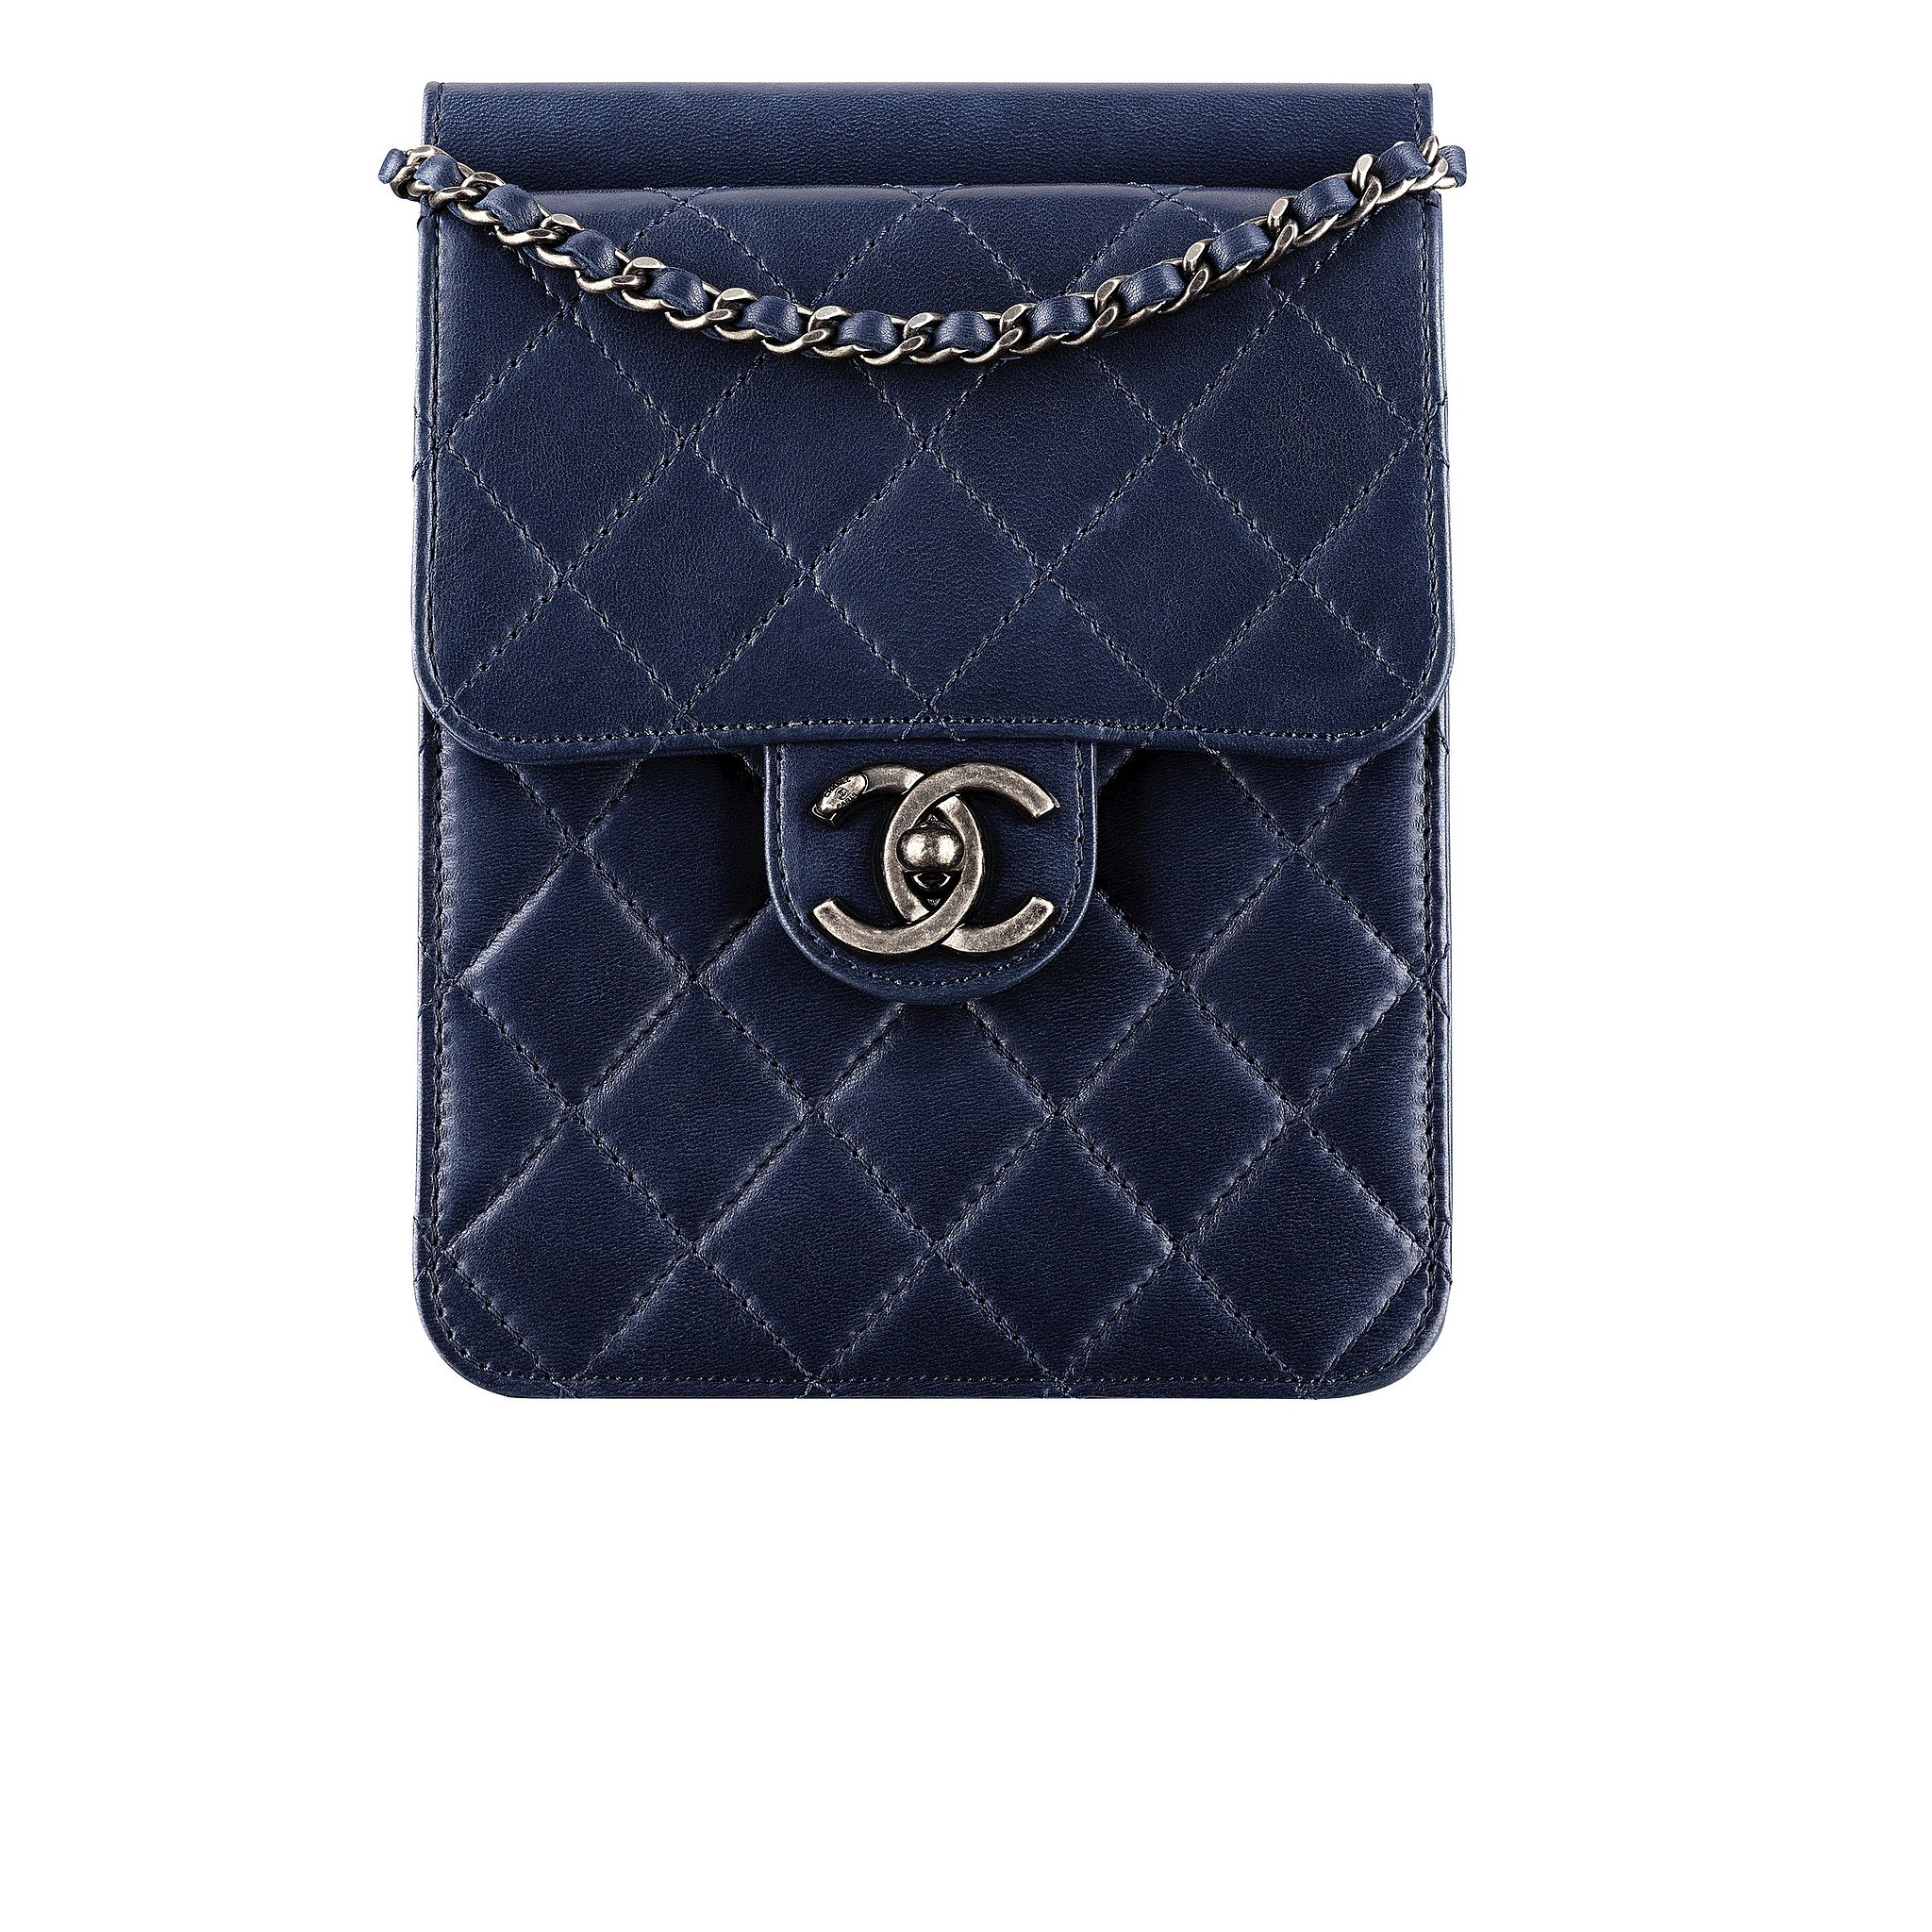 Chanel Navy Blue Quilted Leather Small Bag With a CC LockPhoto ...